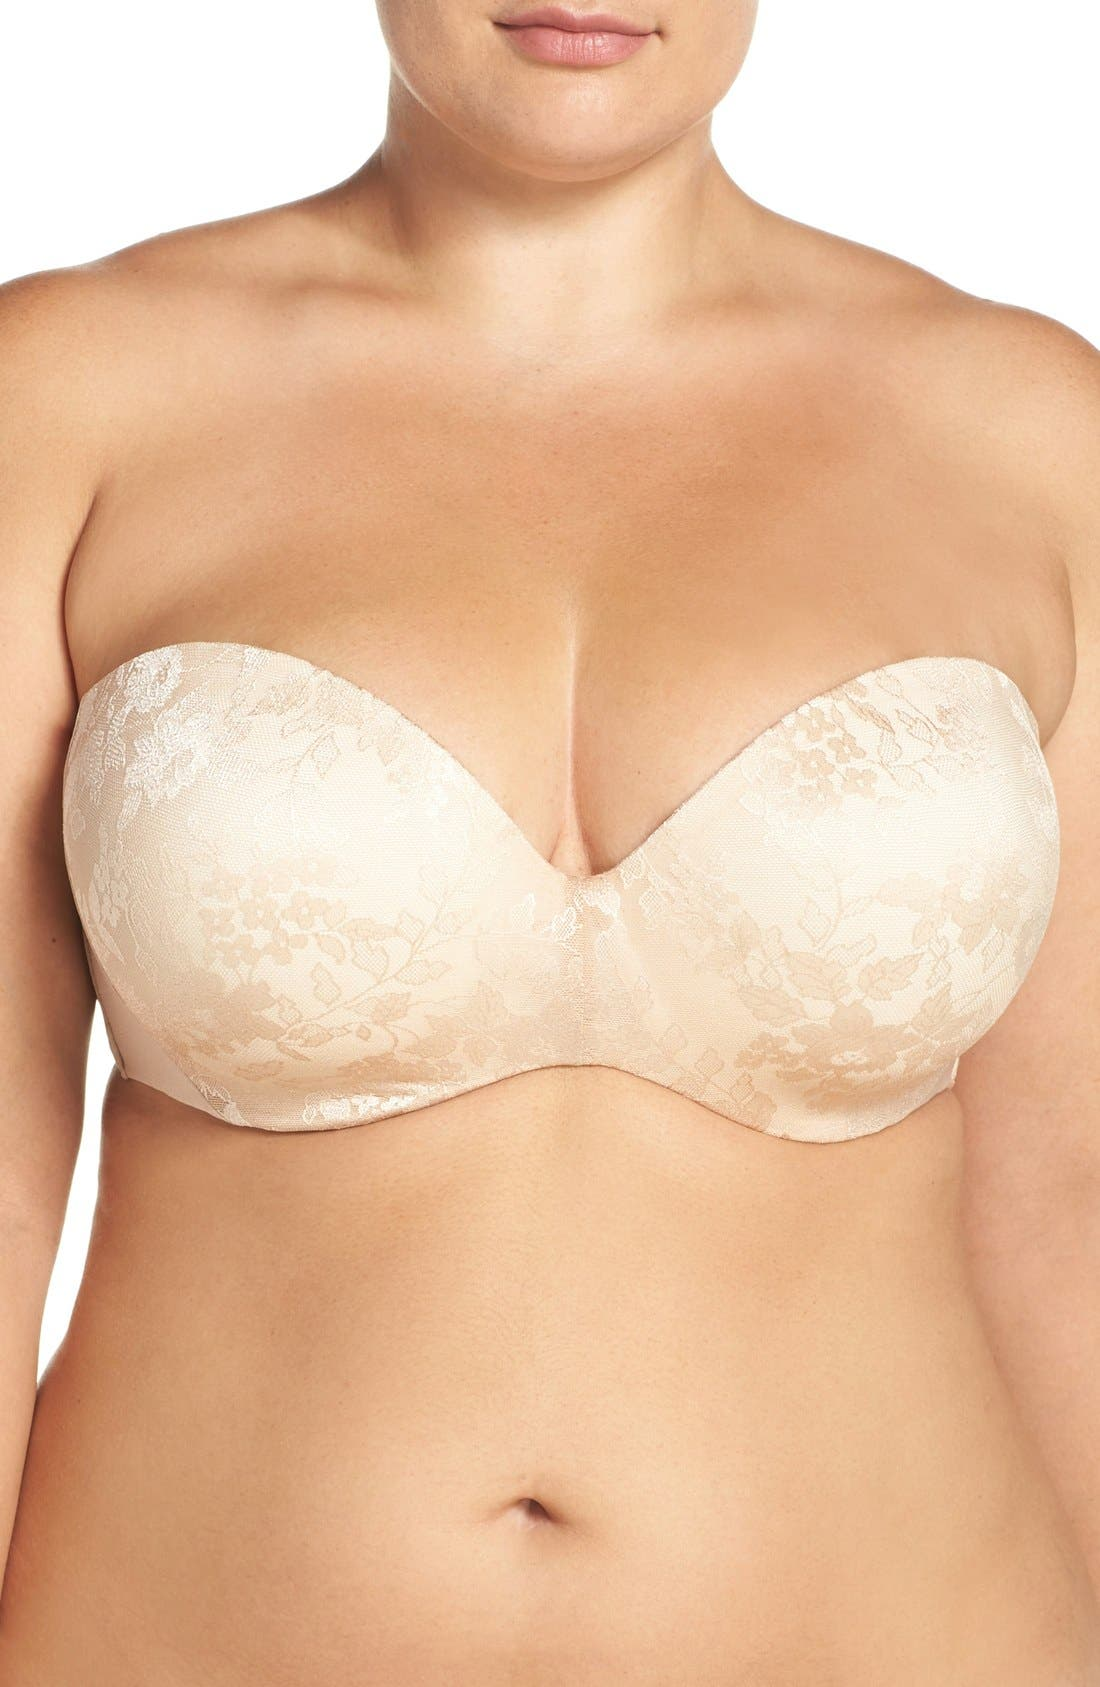 Strapless Underwire Push-Up Bra,                             Main thumbnail 1, color,                             Nude